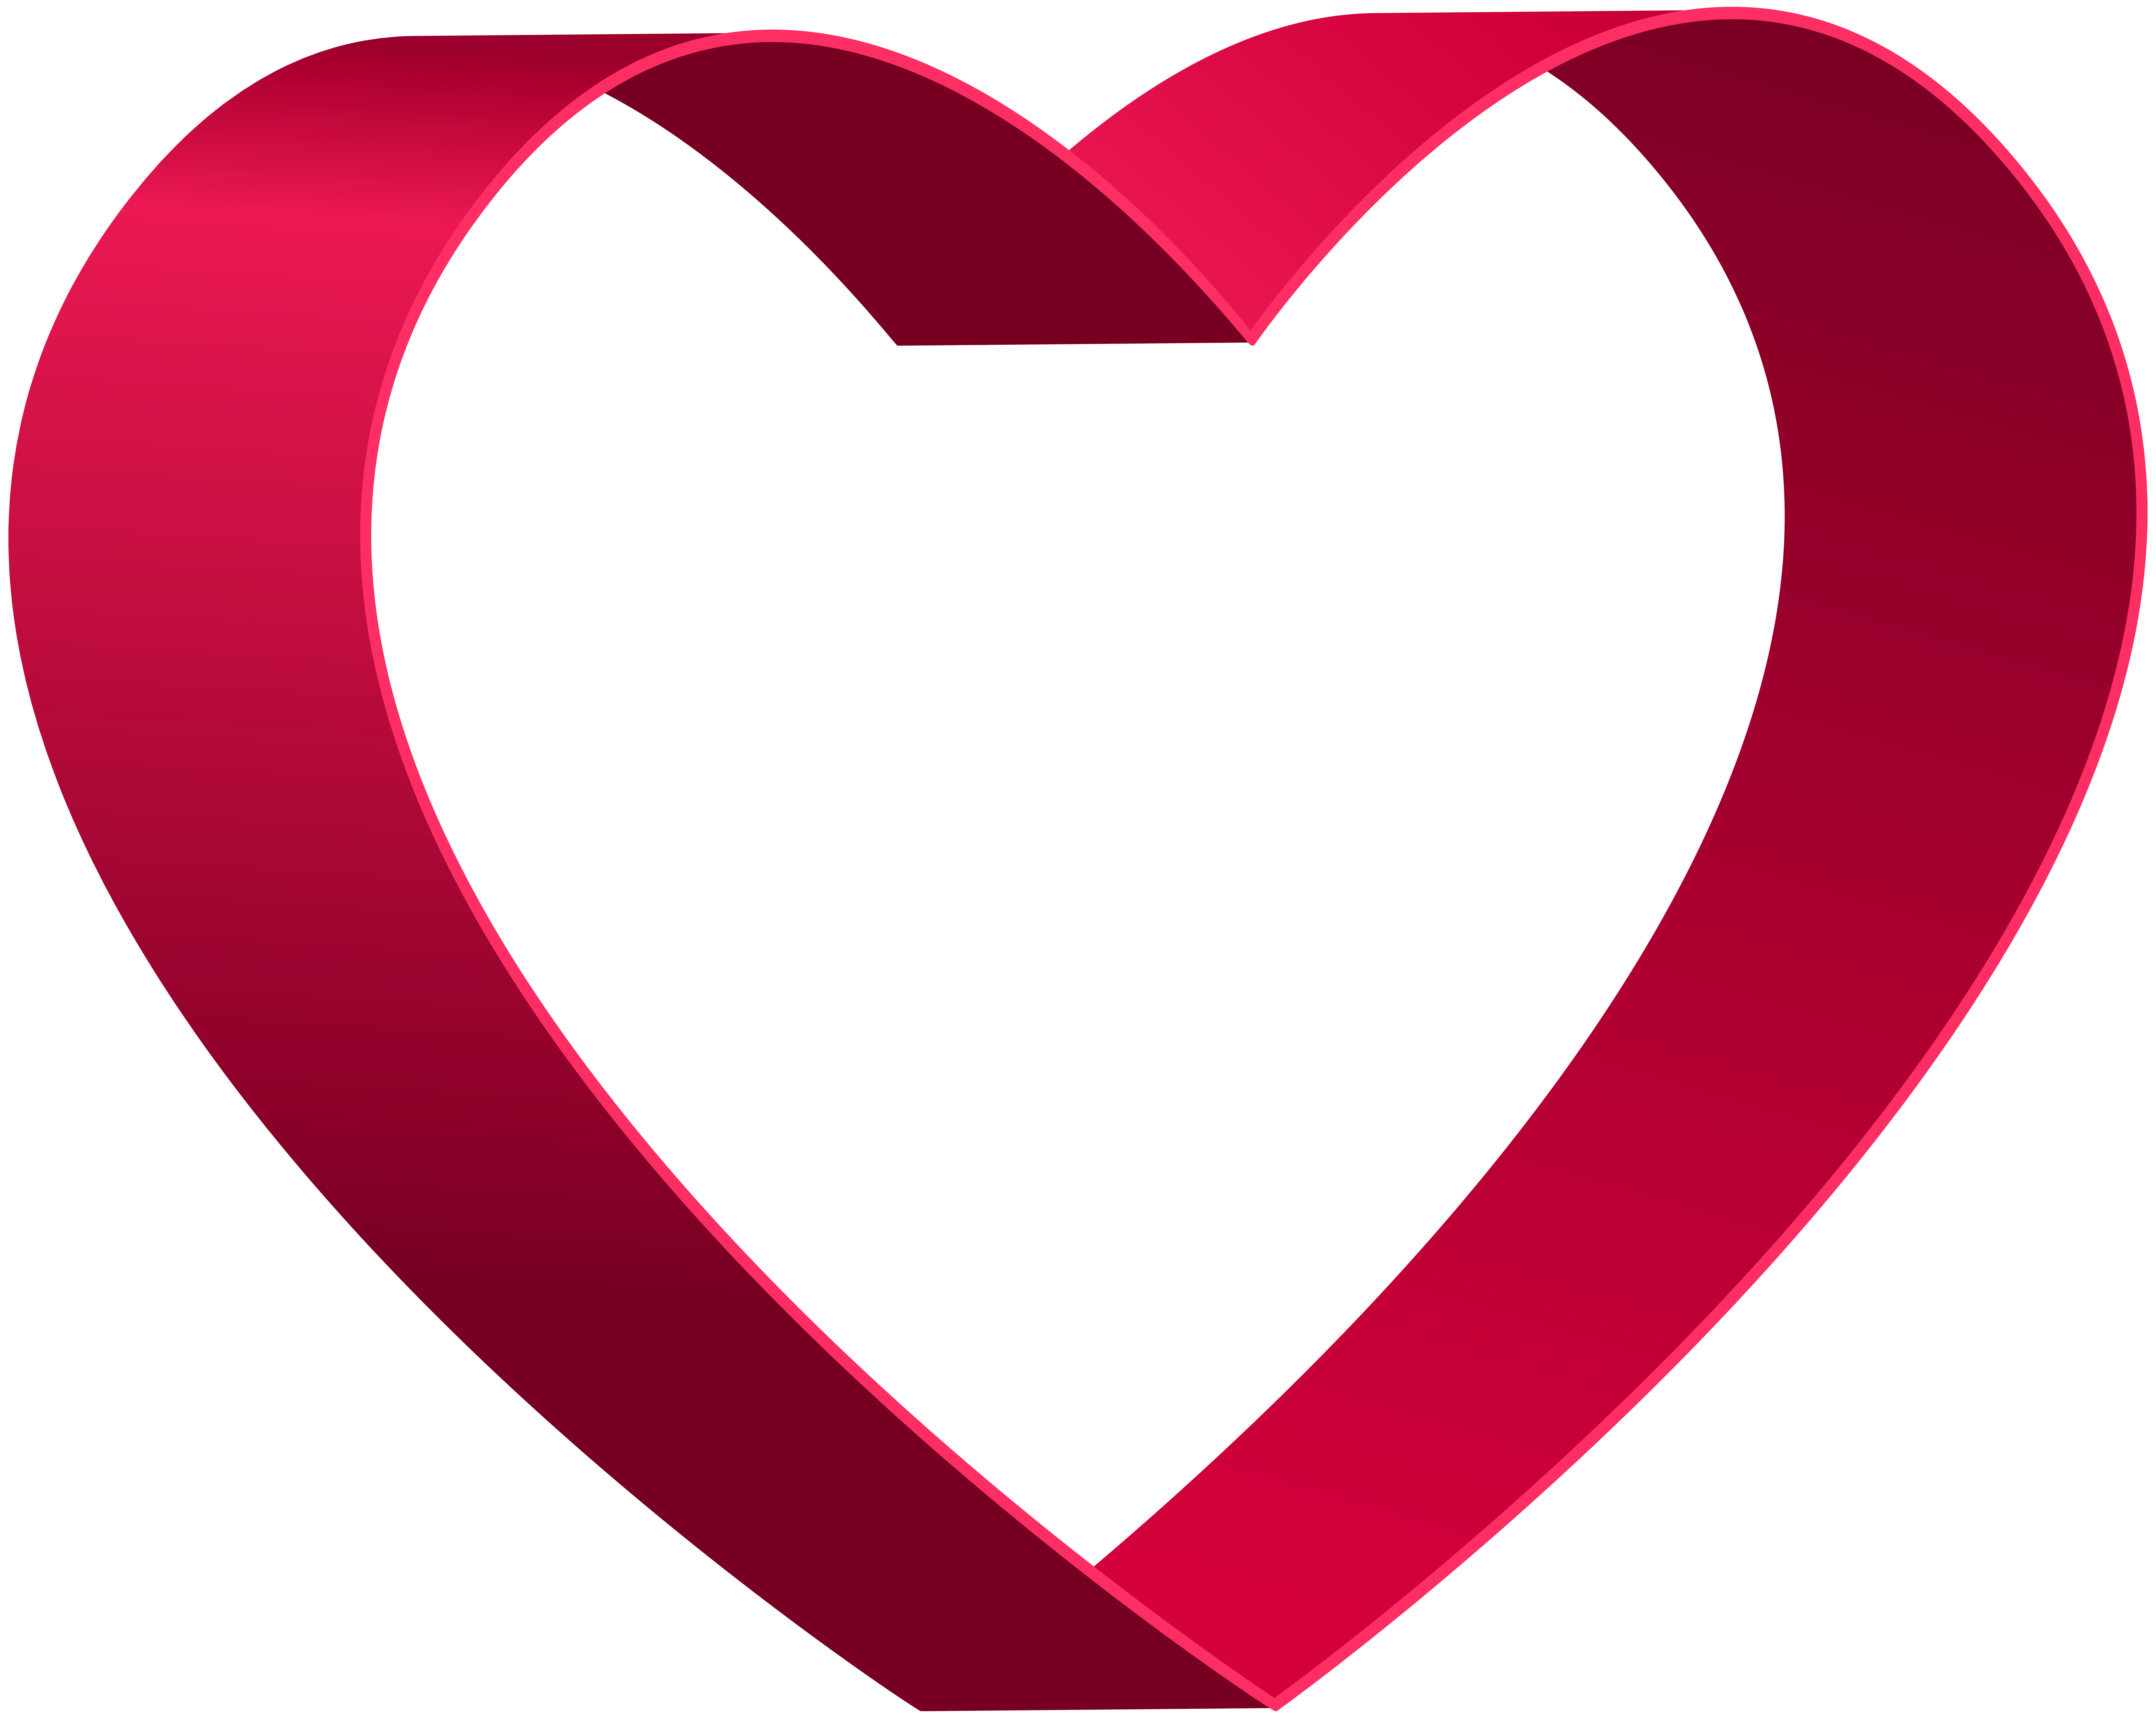 Transparent Heart Shape Png Clip Art Gallery Yopriceville High Quality Images And Transparent Png Free Clipart Clip Art Free Clip Art Heart Shapes